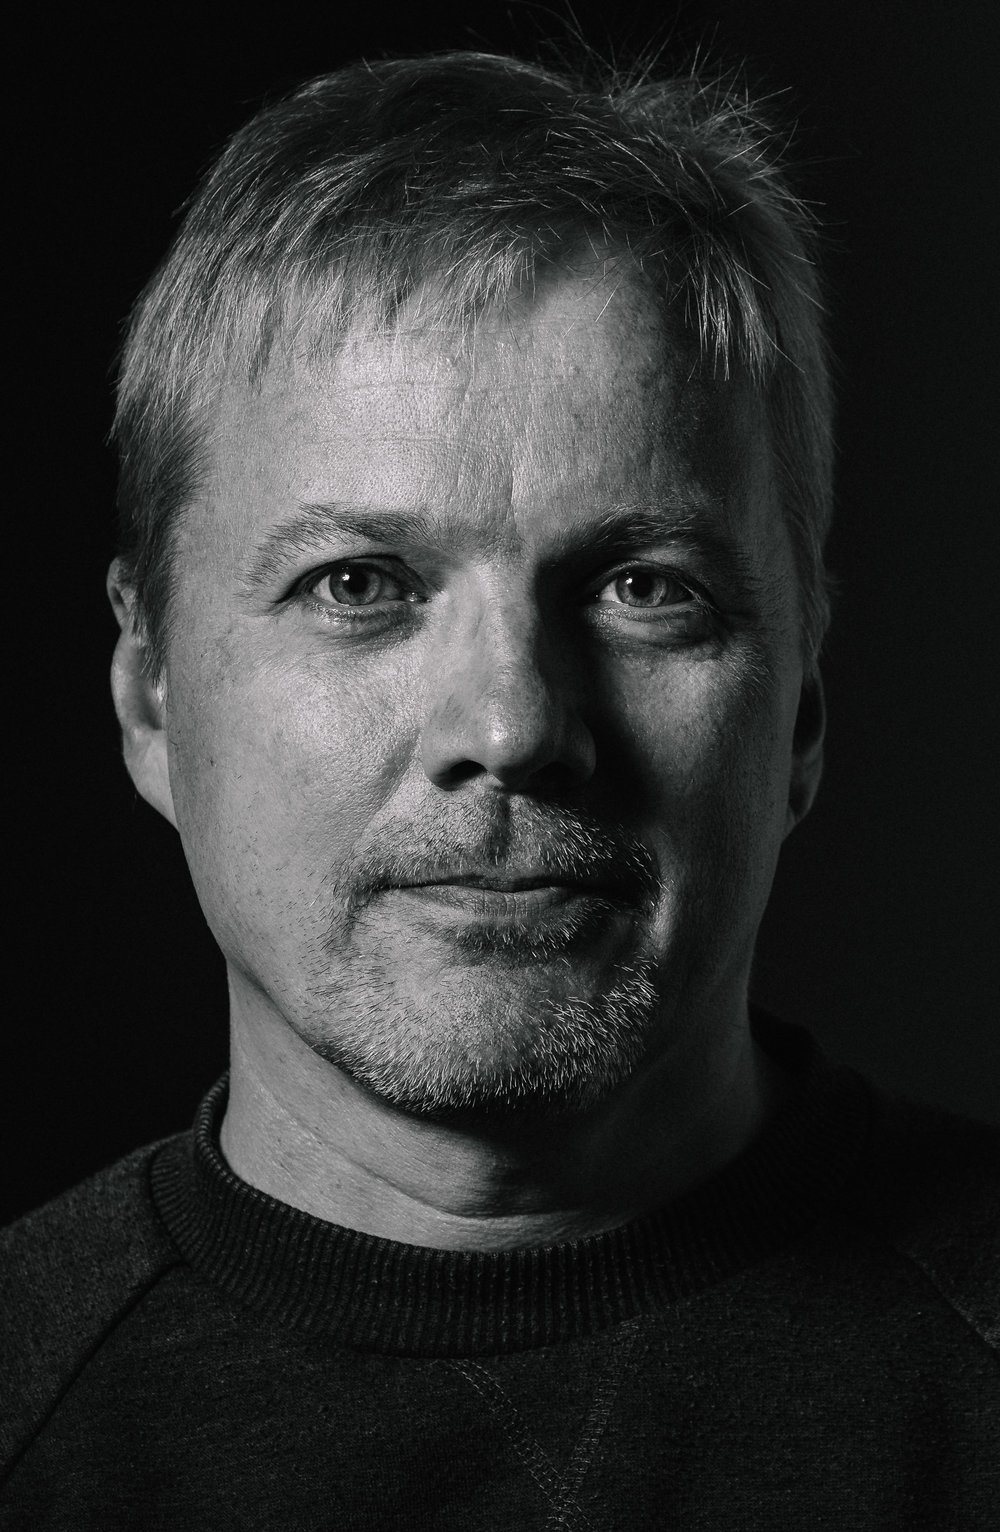 Esa Määttä Principal Mechanics Designer. Previously Principal Engineer at Huawei Technologies, Senior Concept Design Engineer at Microsoft and Nokia. Senior Mechanics Design Engineer at Vertu. B.Sc., Manufacturing Technology, Technical Institute of Turku.